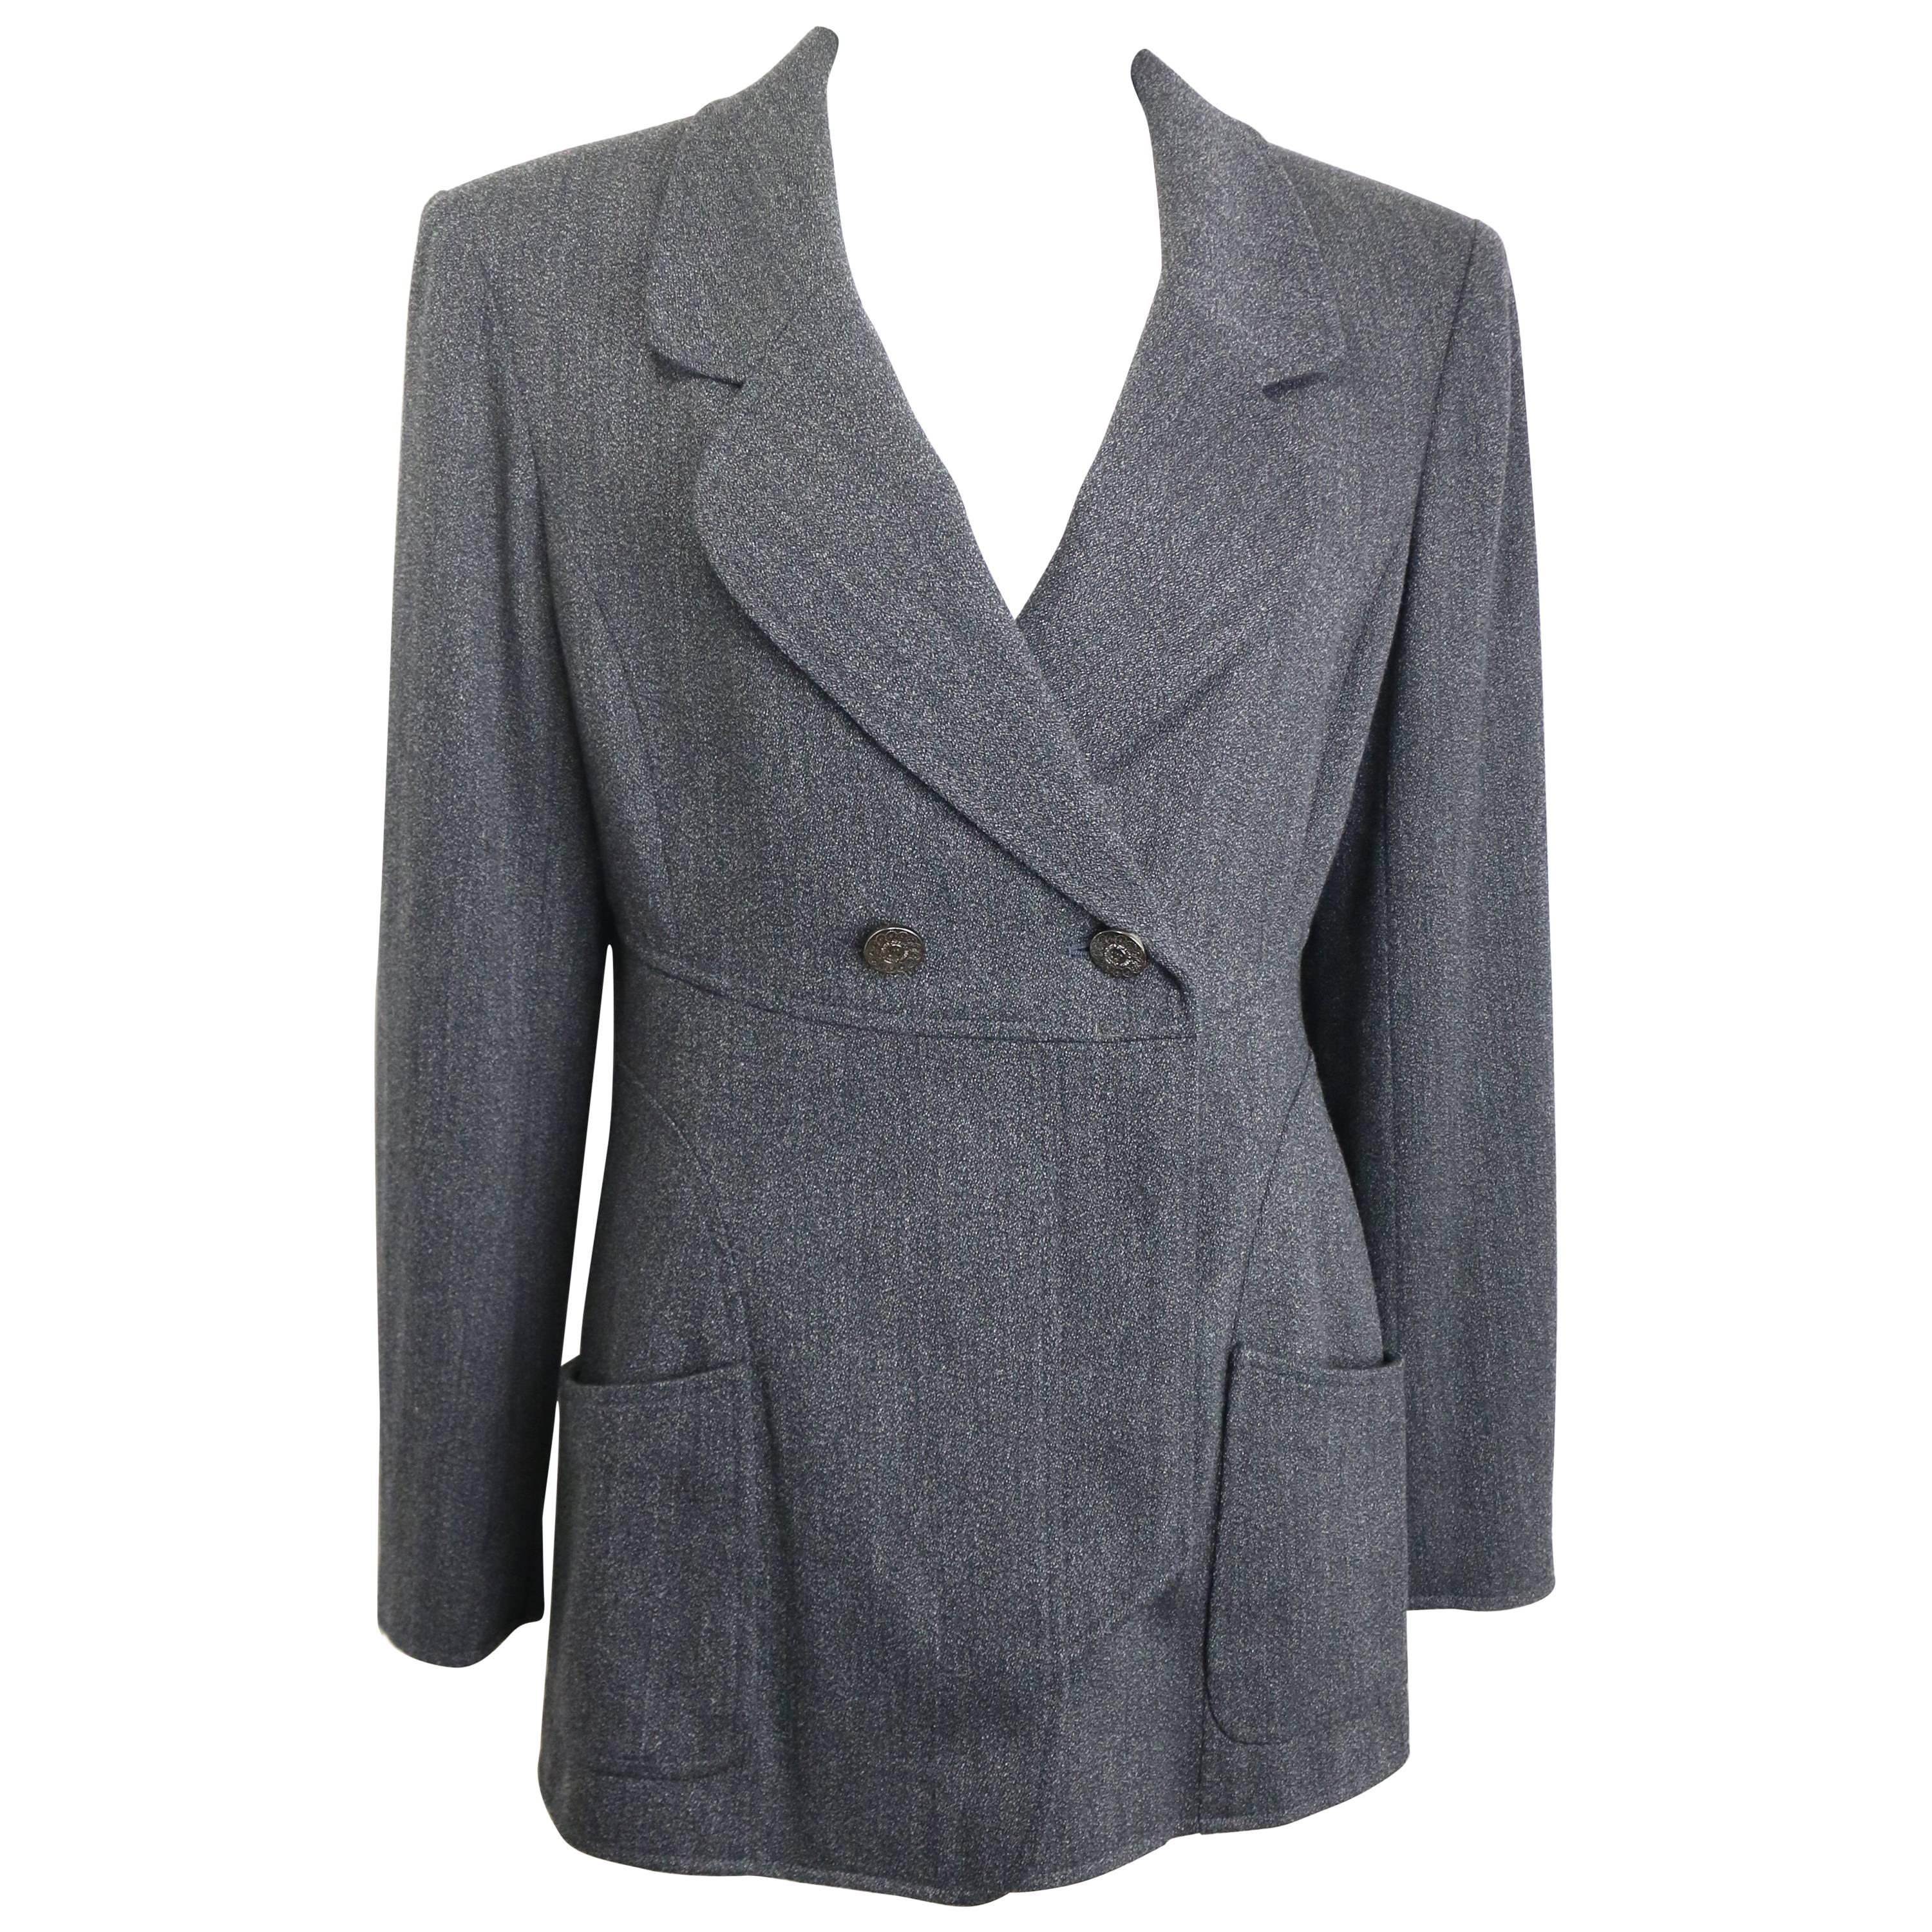 Vintage Fall 1997 Chanel Grey Wool Double Breasted Jacket